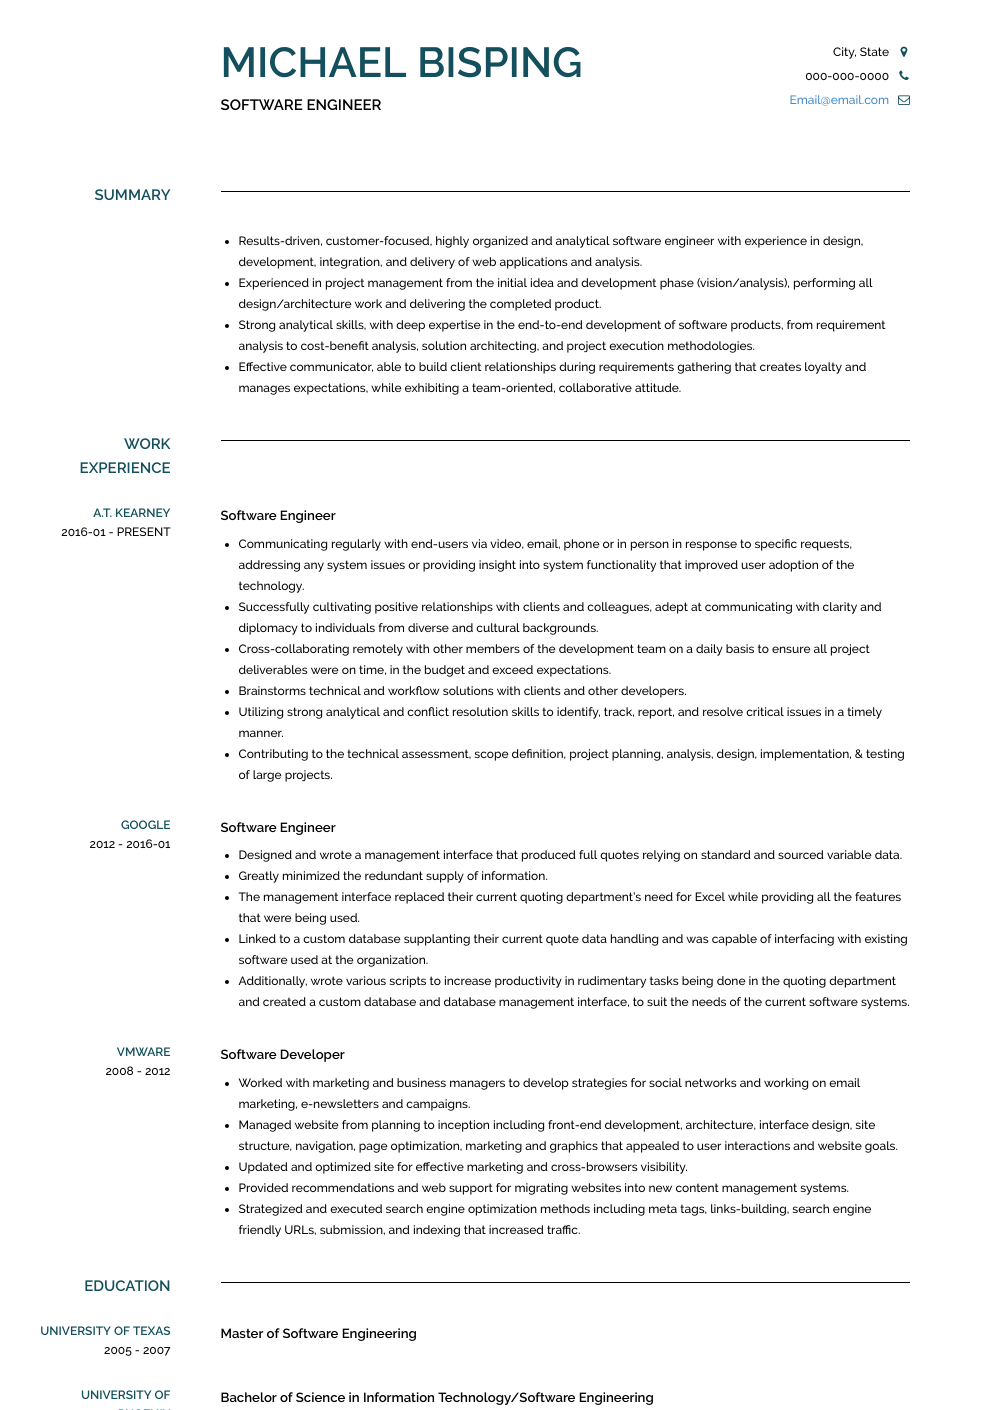 Software Professional Resume Samples Software Engineer Resume Samples Templates Visualcv